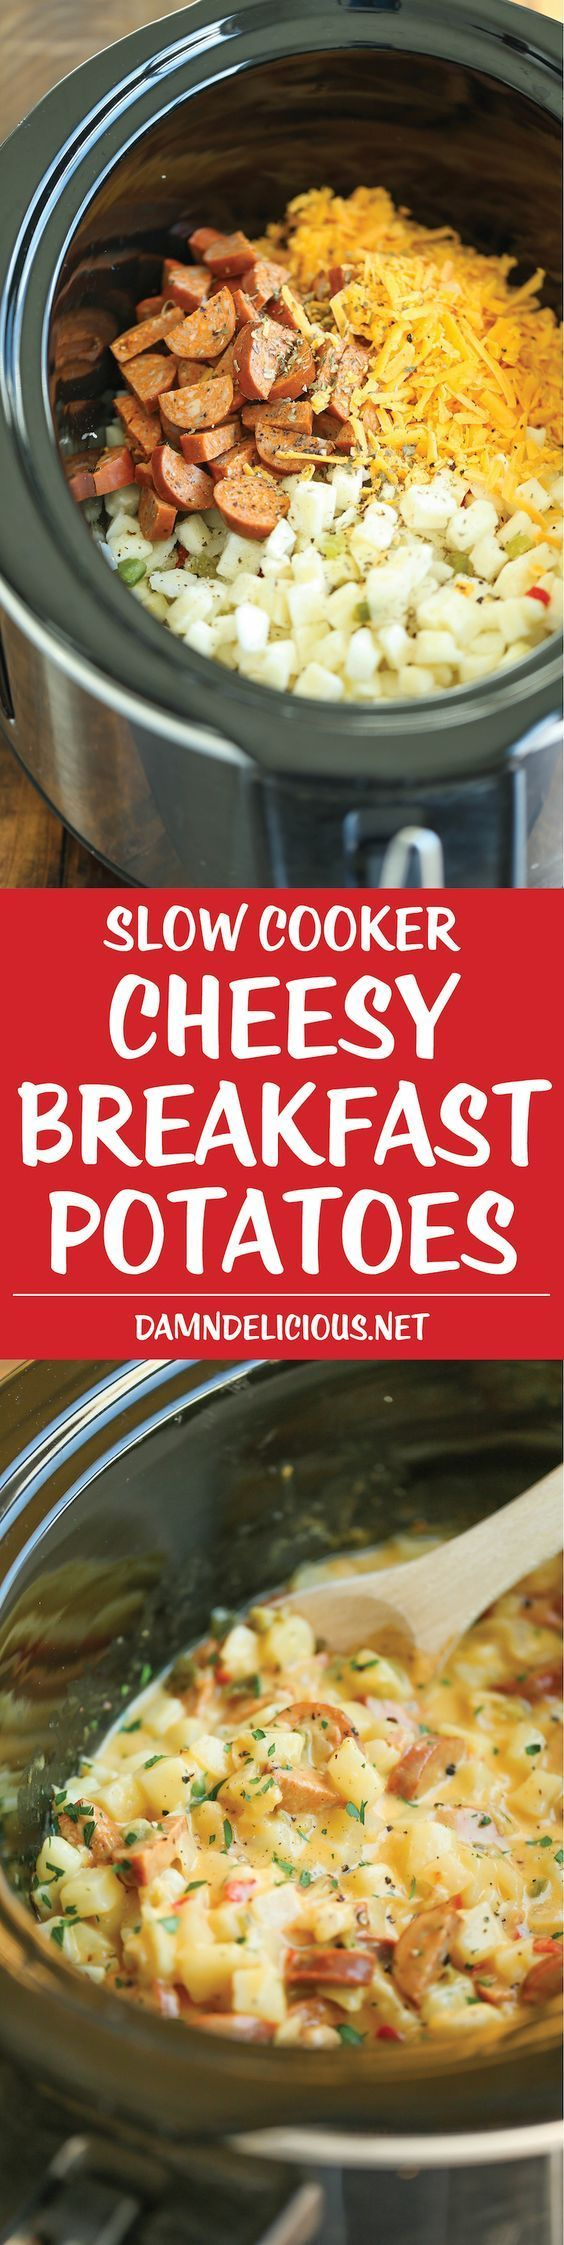 Slow Cooker Cheesy Breakfast Potatoes - This is the ultimate breakfast worth…